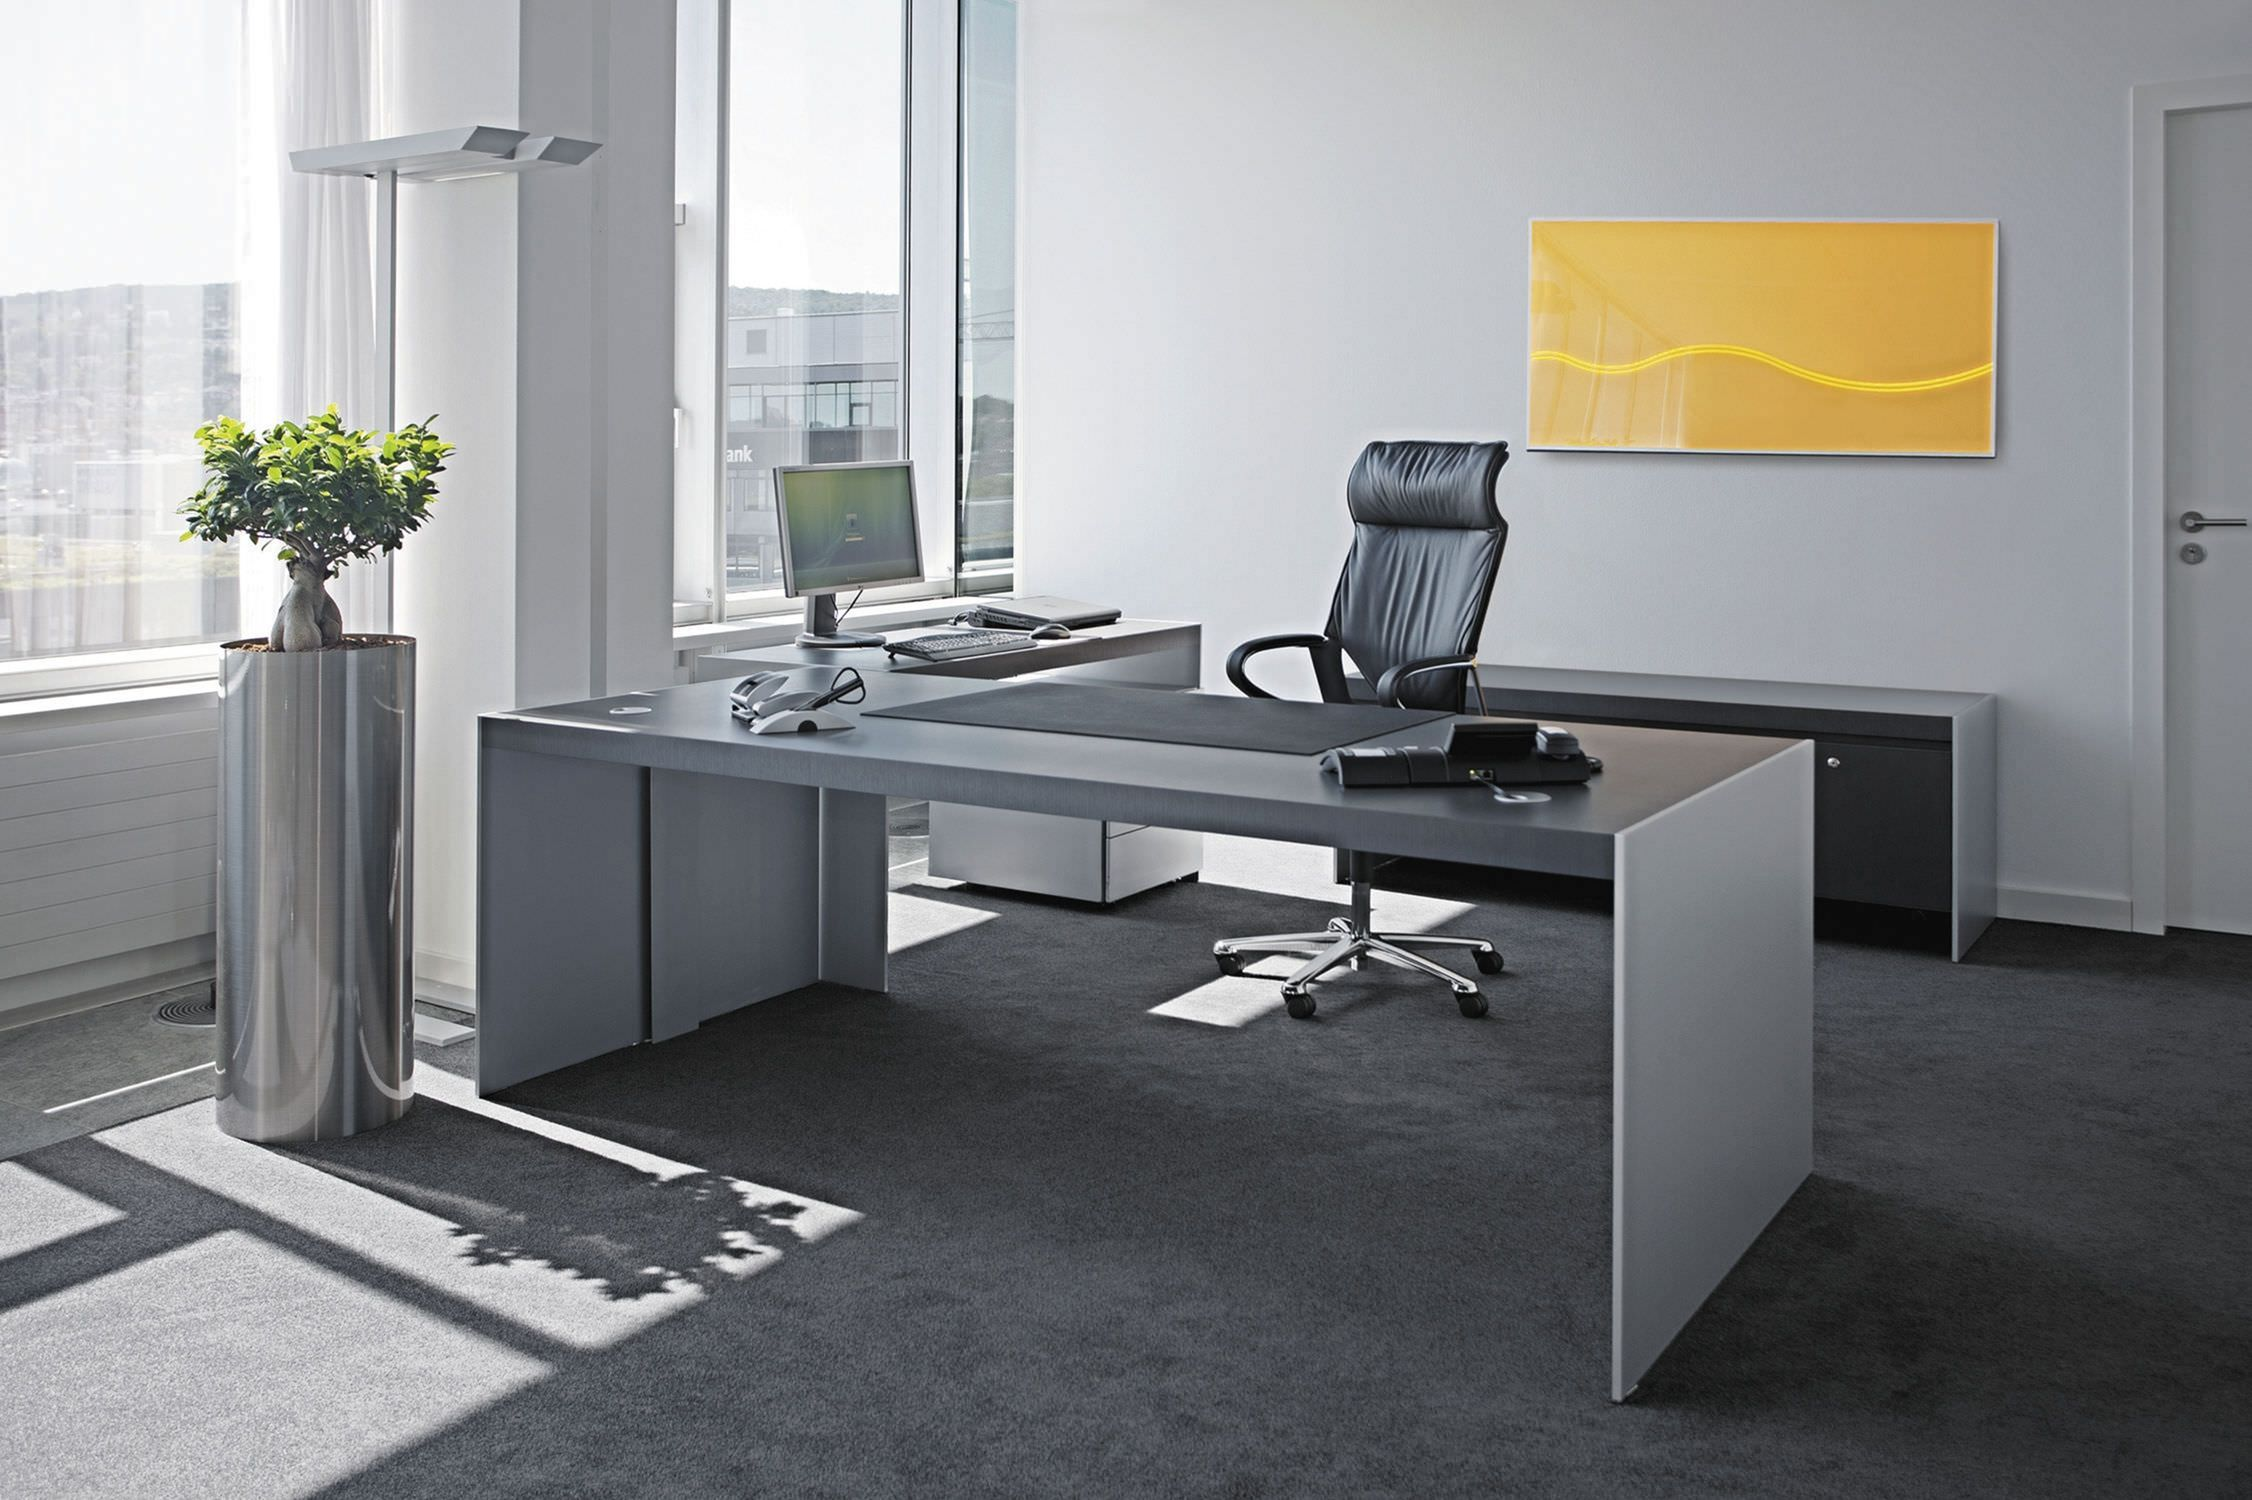 25 Most Comfortable Home Offices Designs With Awesome Furniture Dexorate Contemporary Office Desk Modern Home Office Desk Unique Office Desks